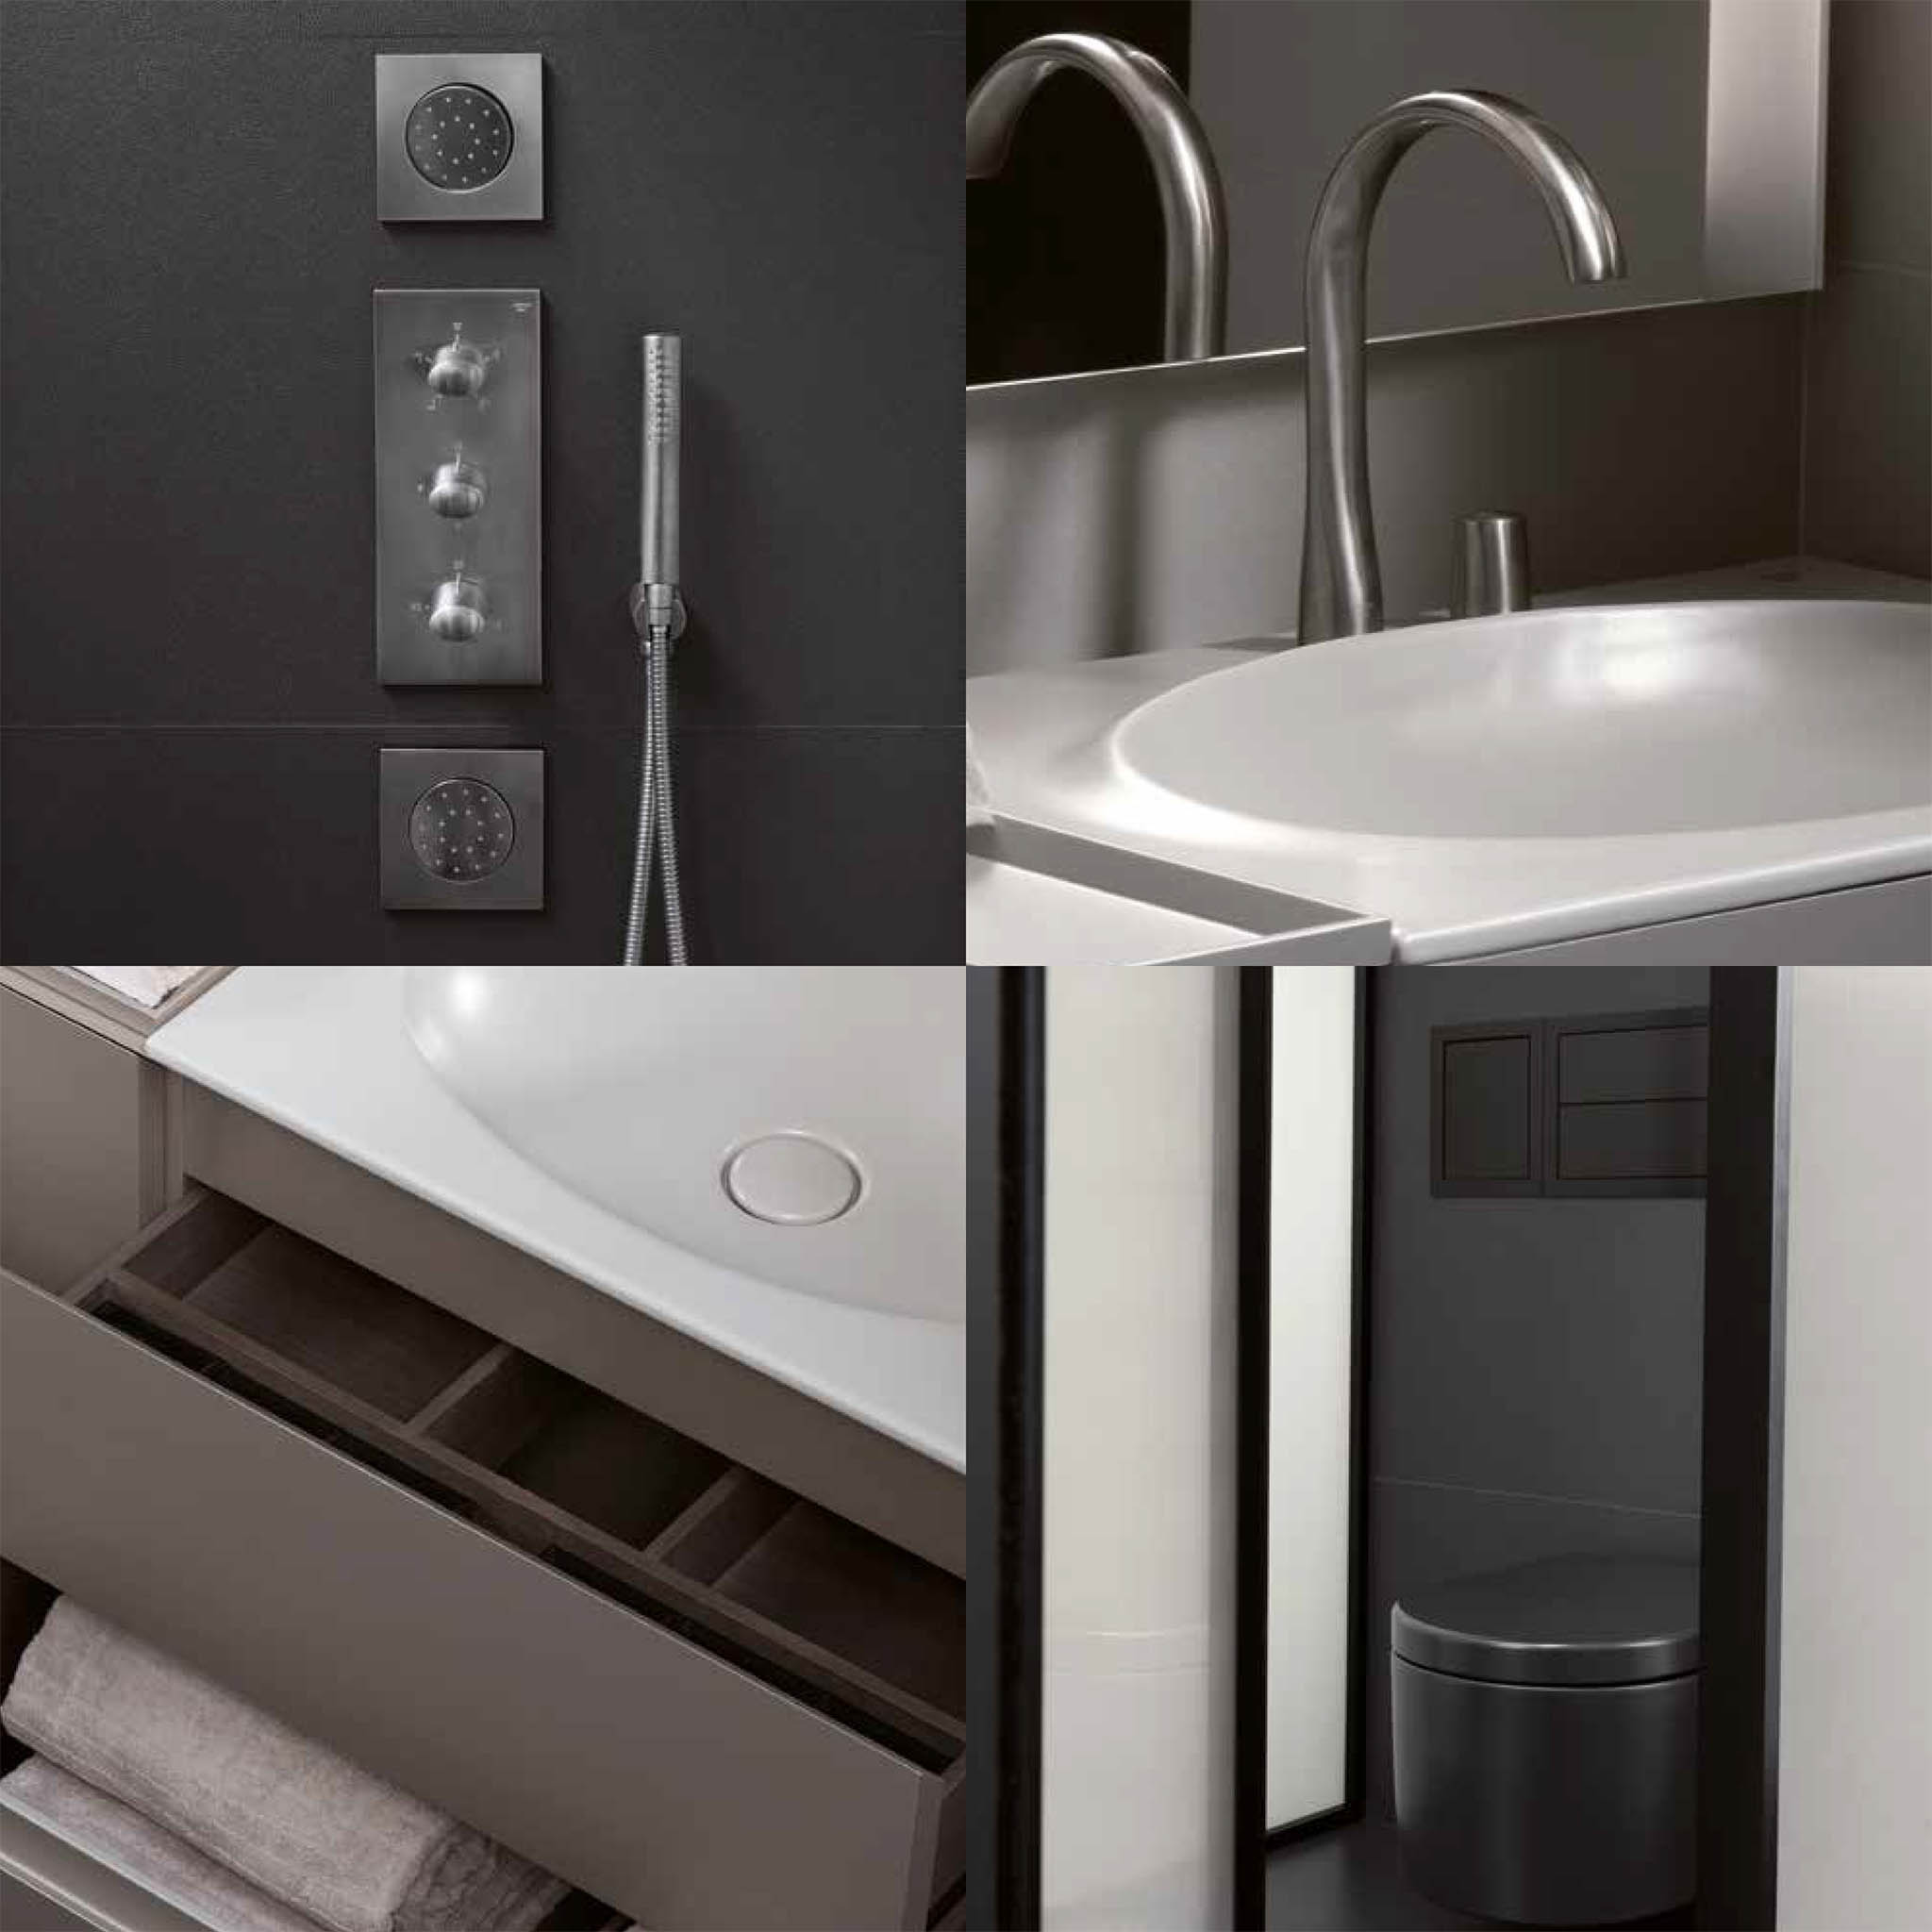 quality brand kitchen cabinets home styles cart il bagno: sanitary ware in cyprus